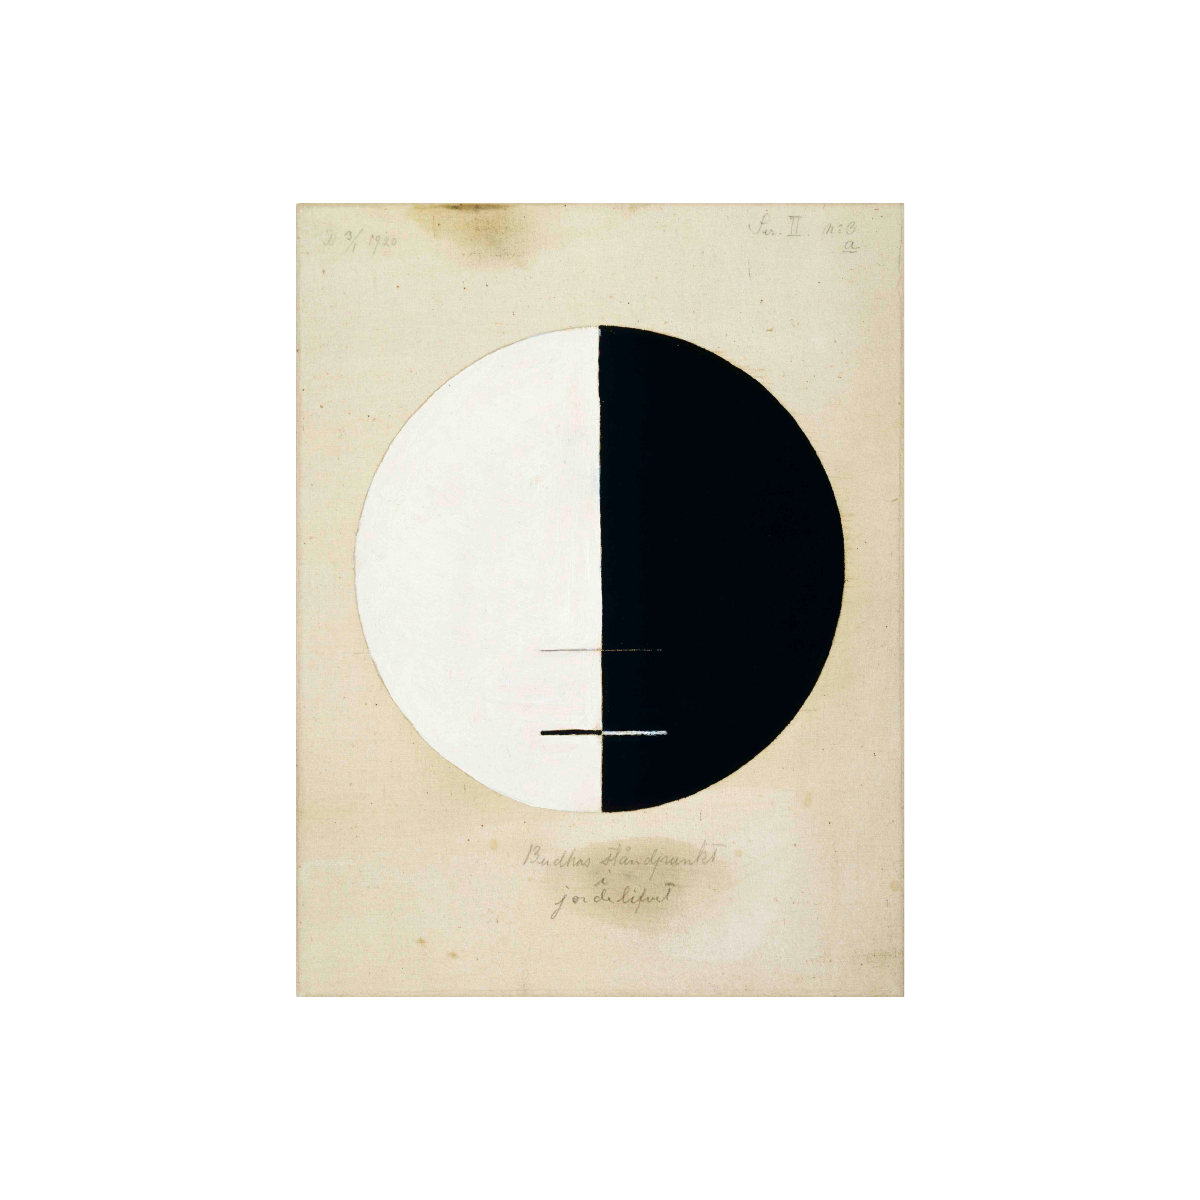 uncover-body-hilmaafklint-03.png